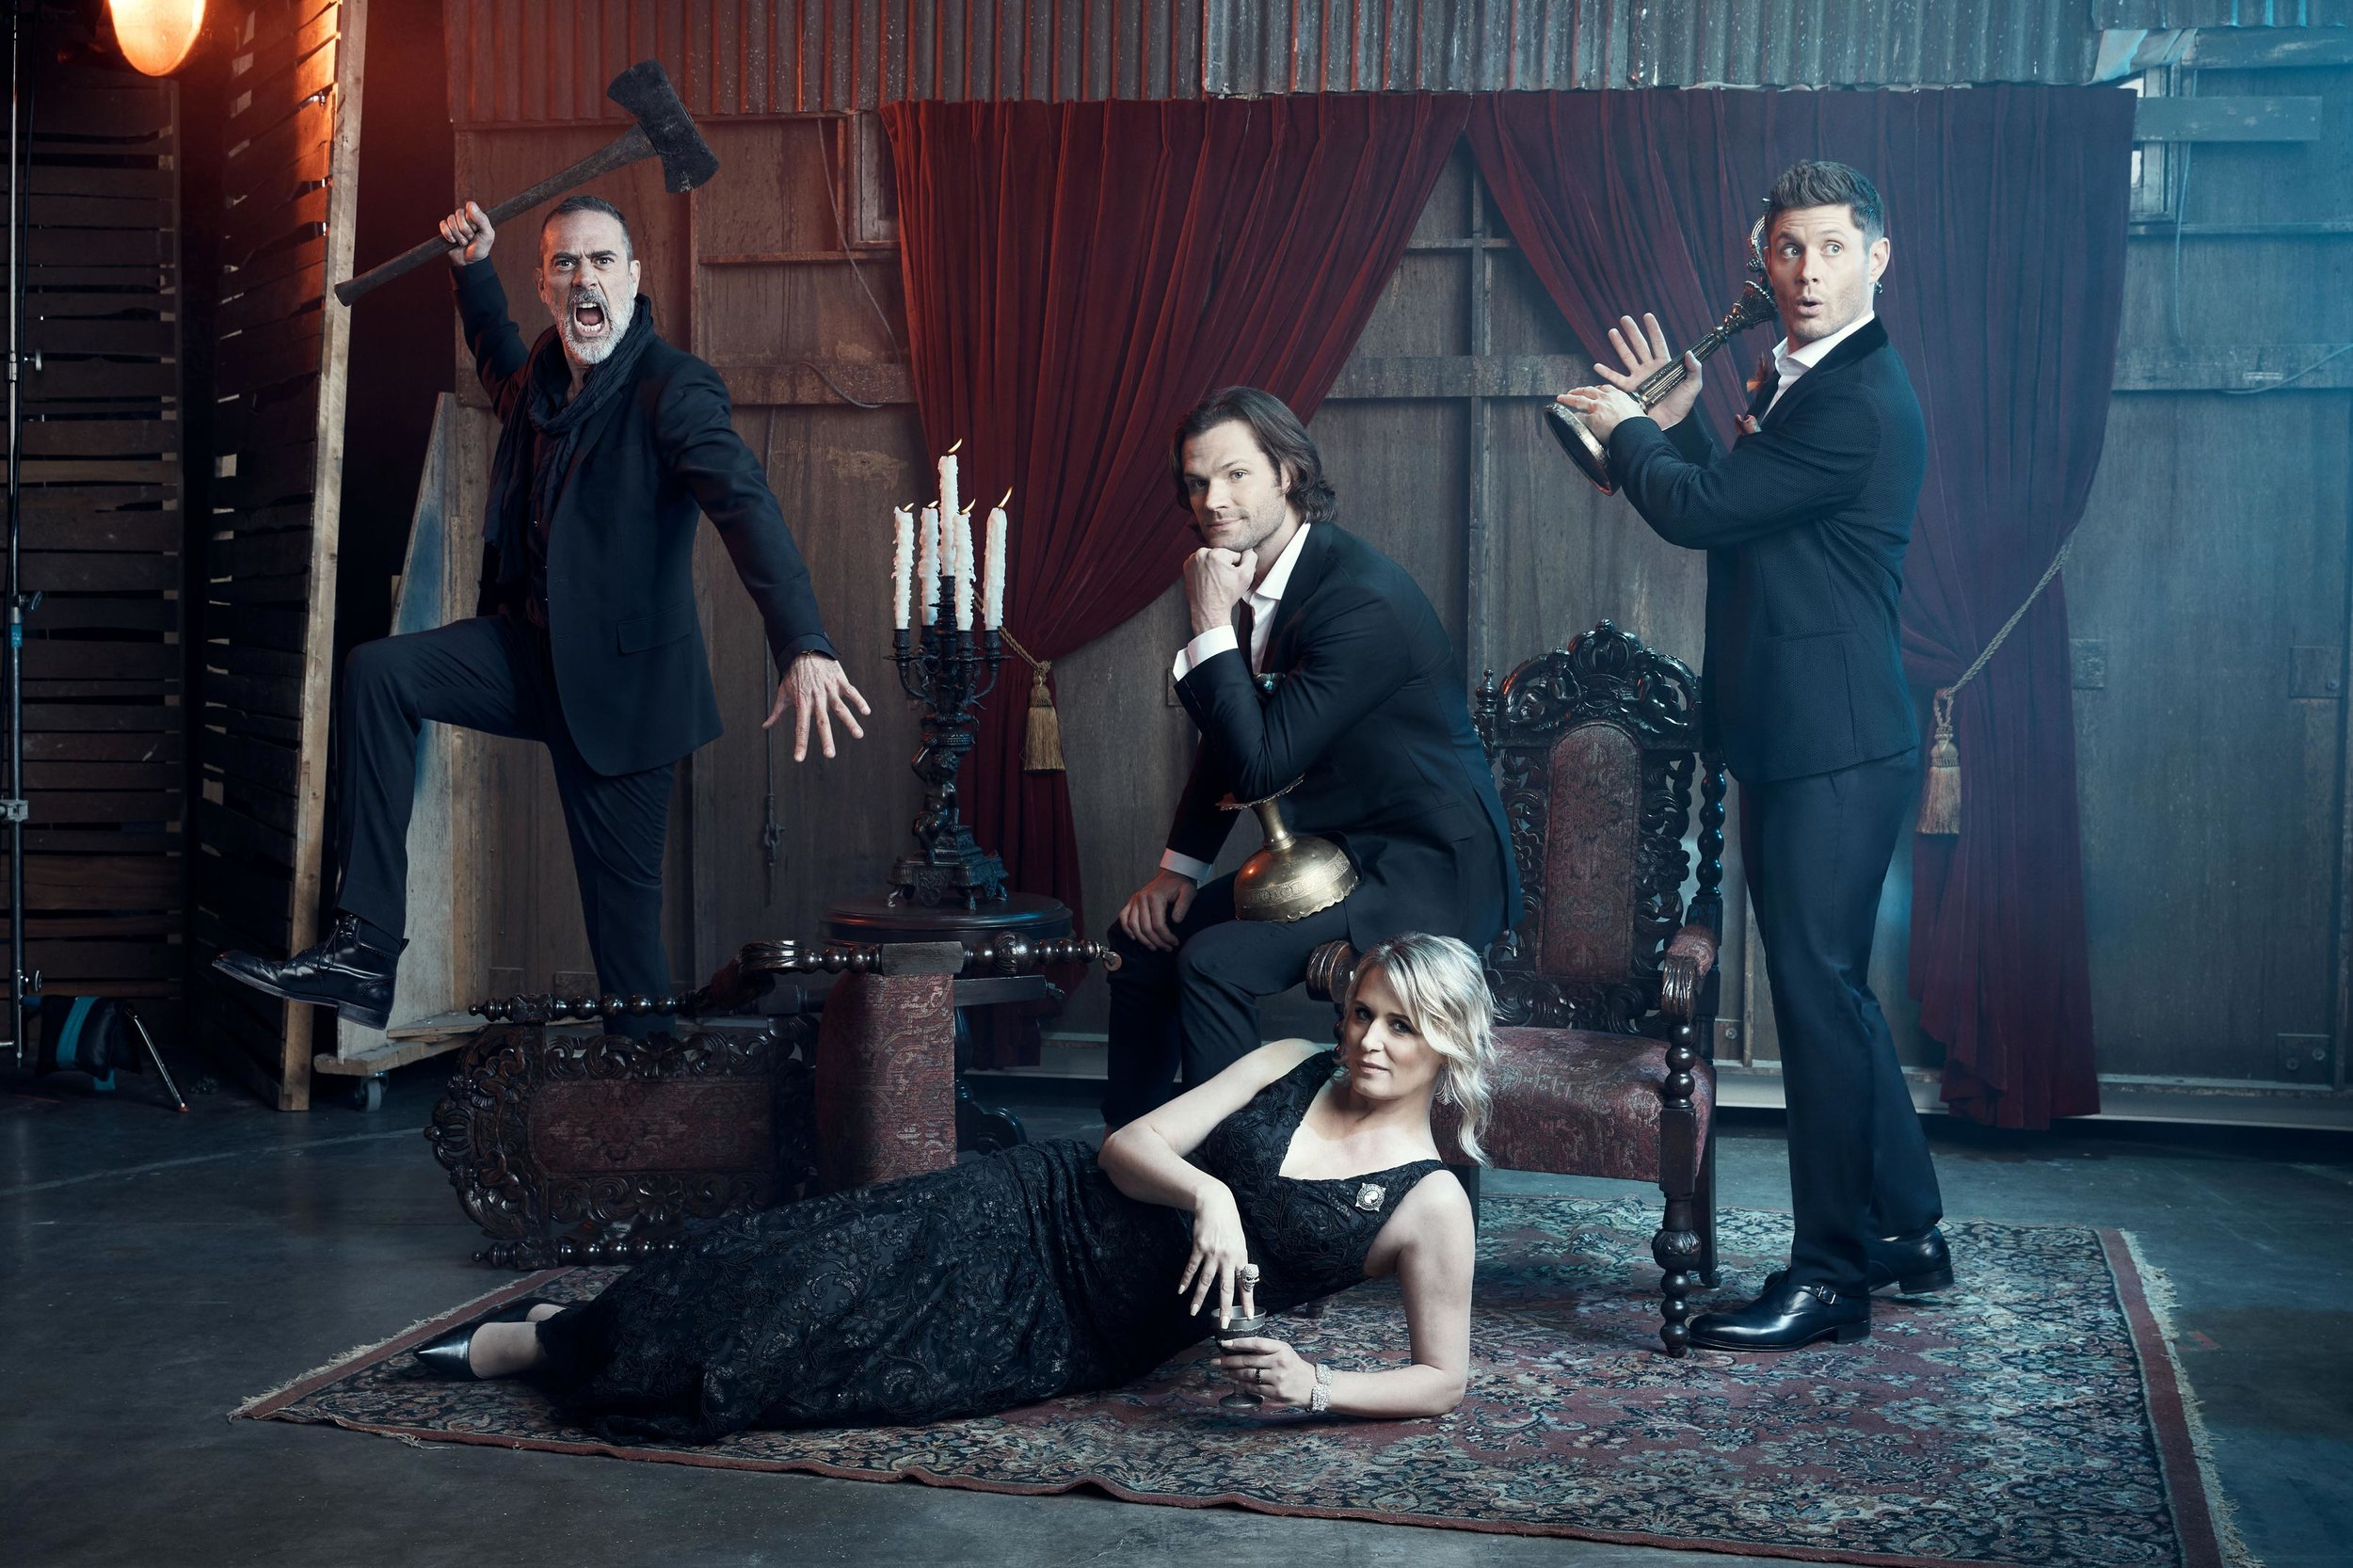 2019_01_09_EW_Supernatural_FamilyPortrait_Inside_1719-comp-2a_Web.jpg